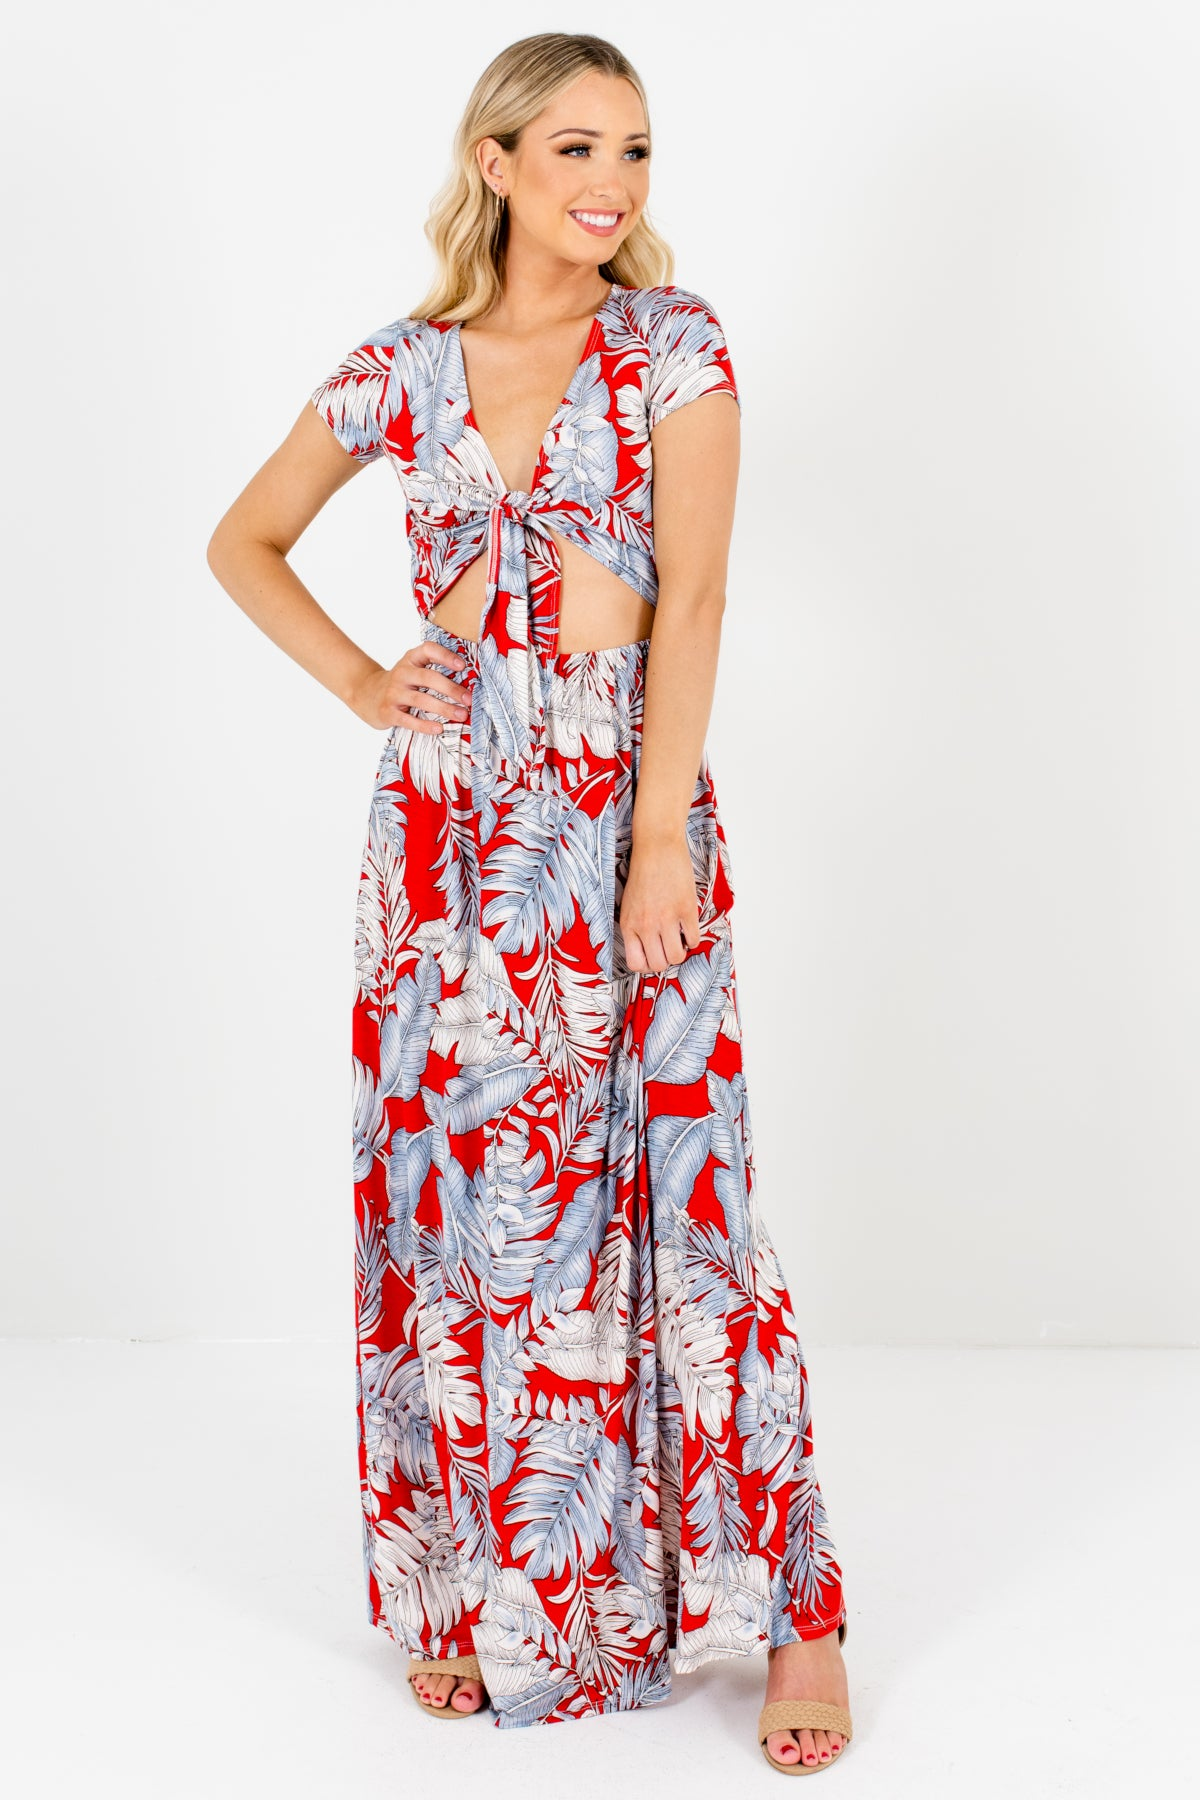 447a96a0746 Red White and Light Blue Tropical Patterned Boutique Maxi Dresses for Women